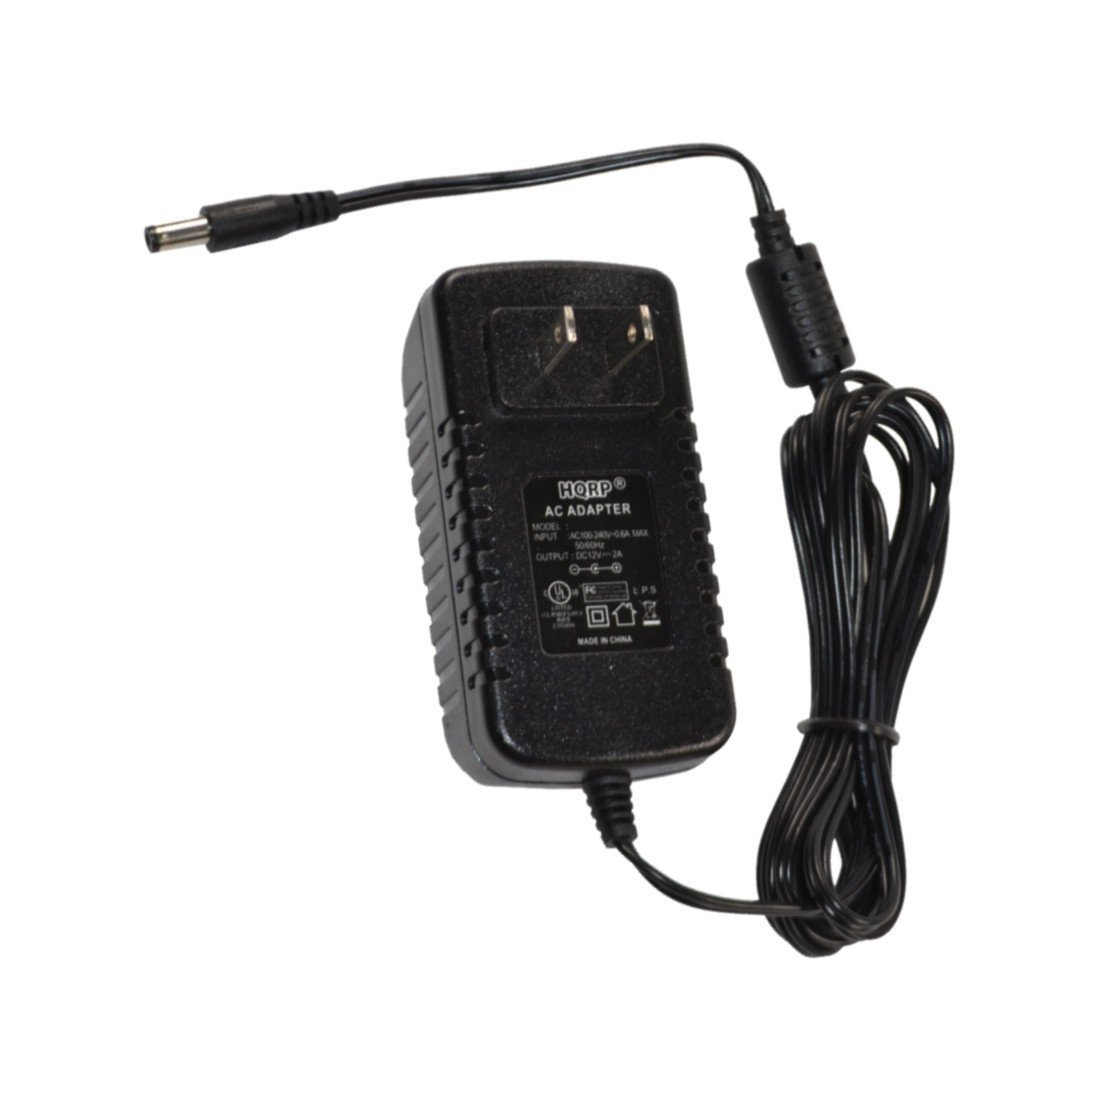 HQRP Power Cord/AC Adapter 12V 2A for SWANN PRO-580 - Multi-Purpose Day/Night Security Camera - Night Vision 65ft / 20m; SWPRO-580PK4 [UL Listed] Plus HQRP Euro Plug Adapter